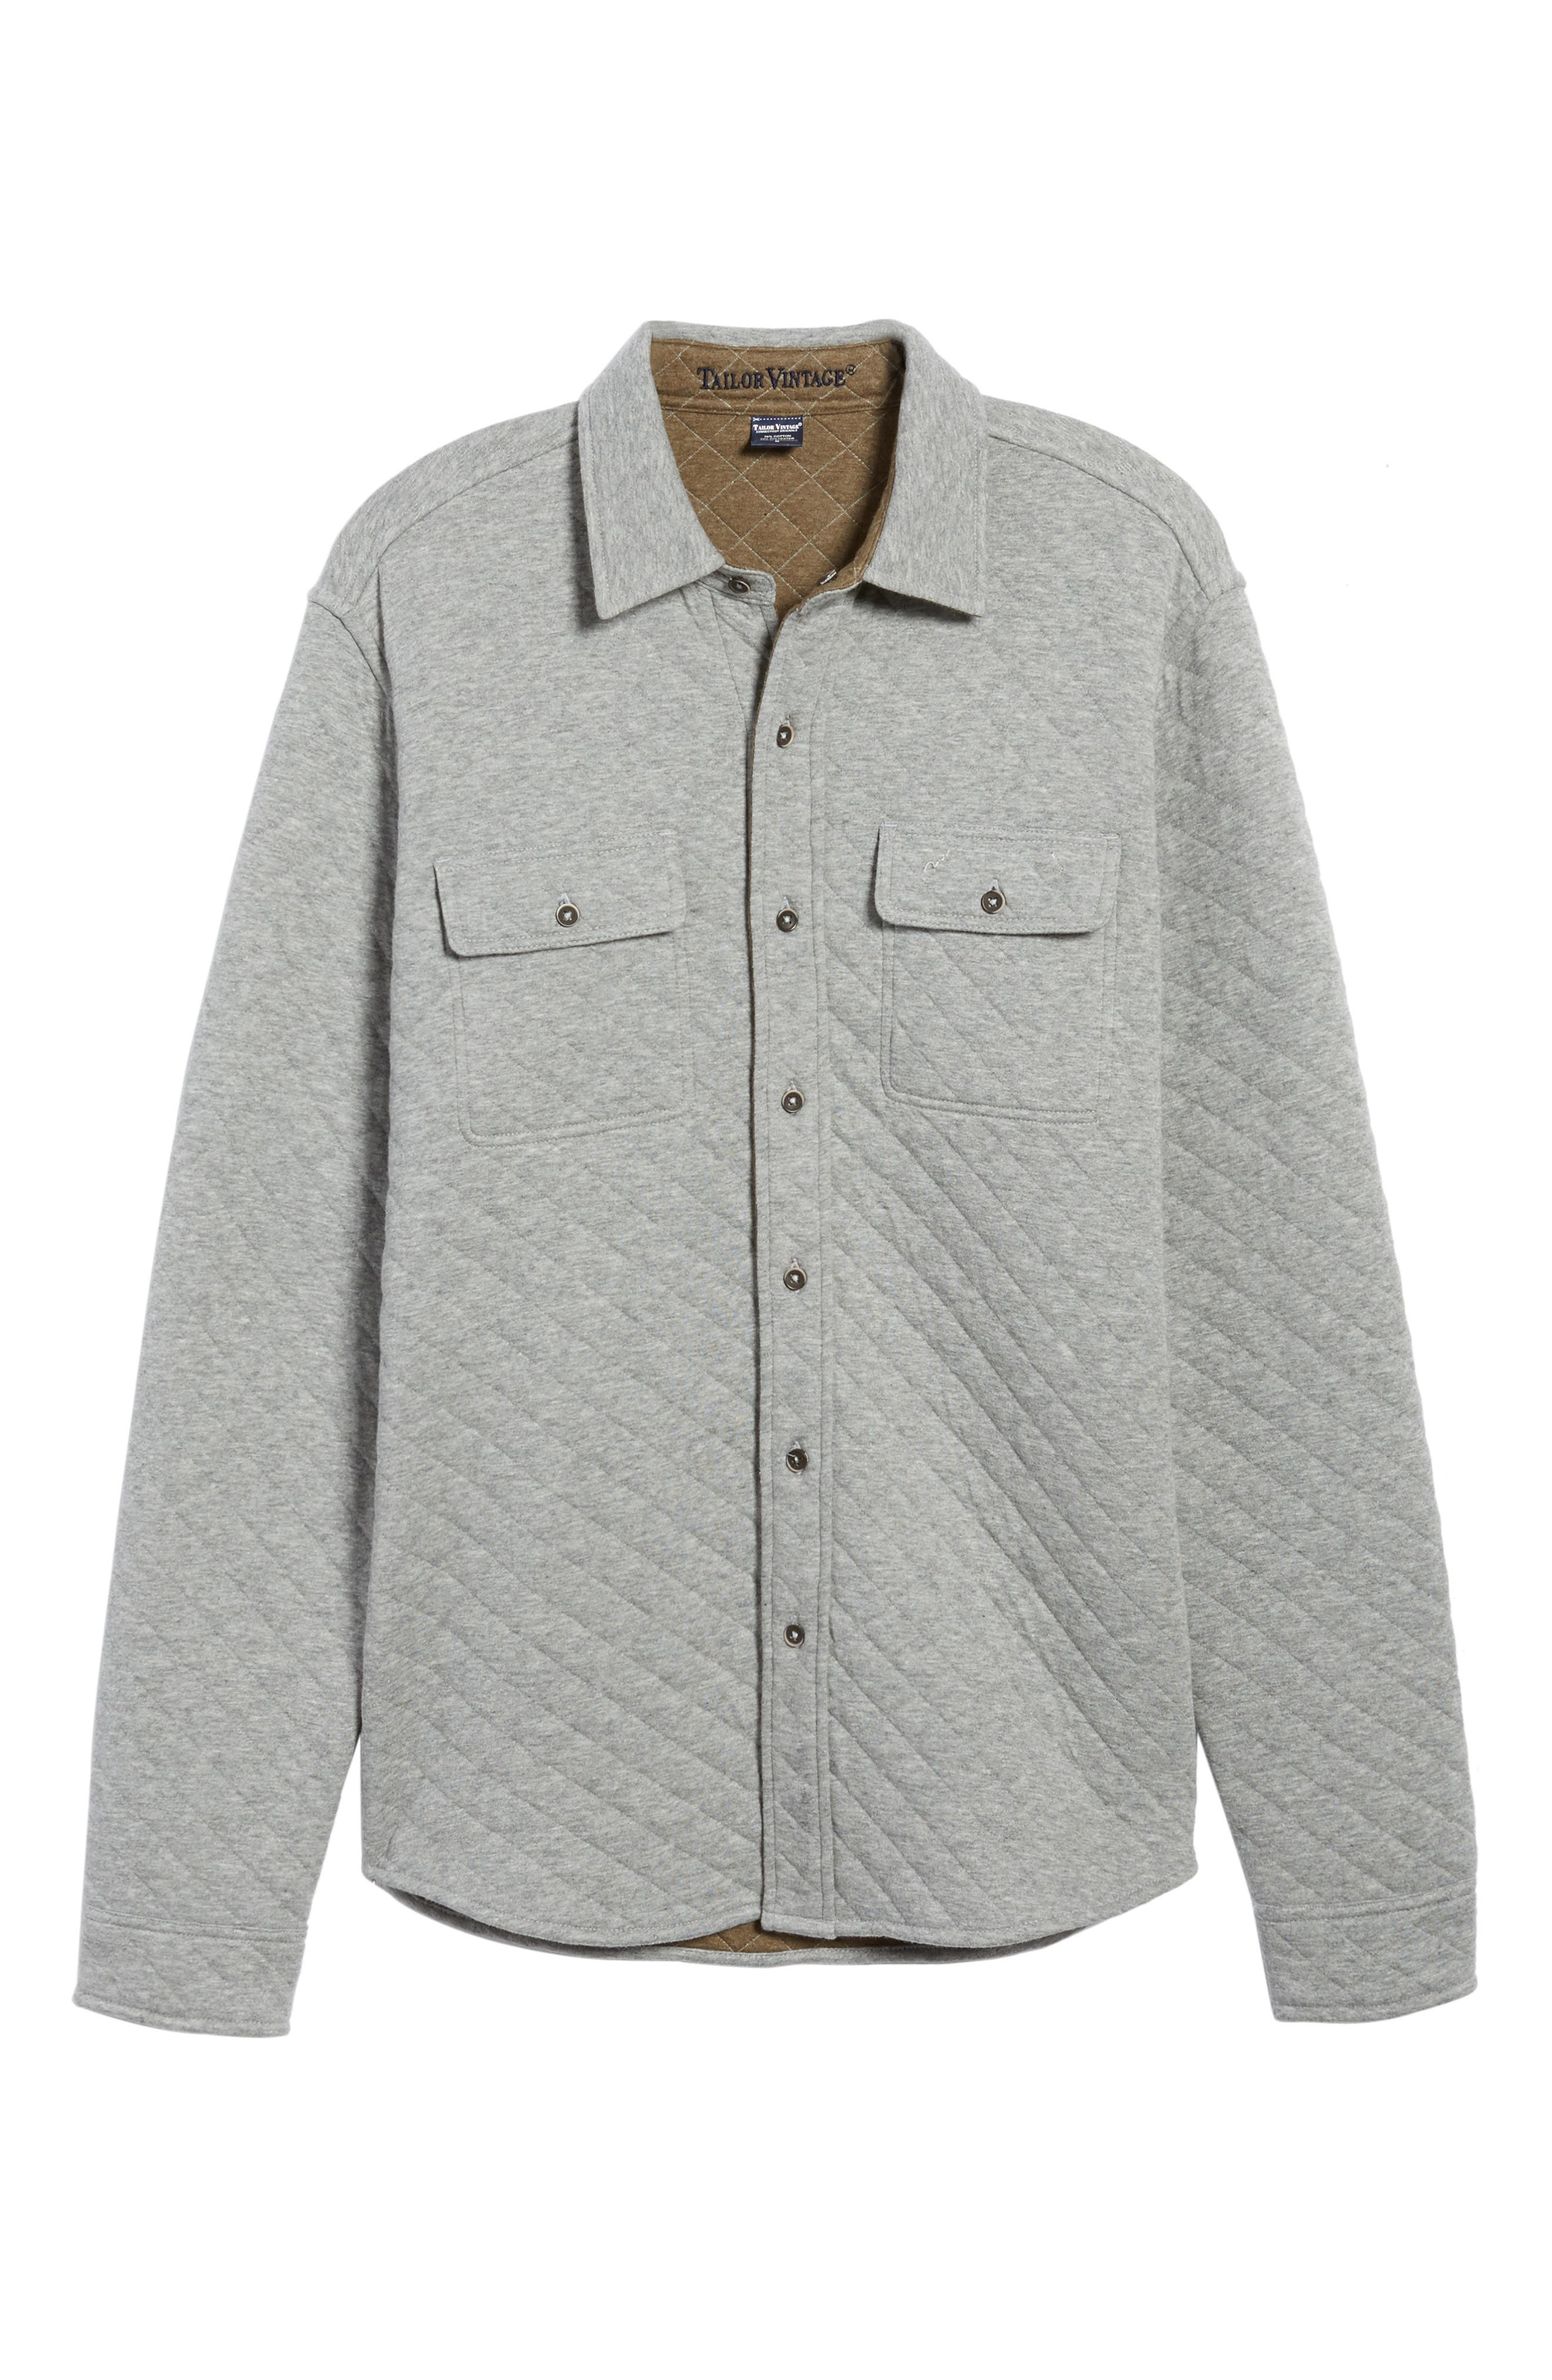 Reversible Double-Face Quilted Shirt,                             Alternate thumbnail 6, color,                             035